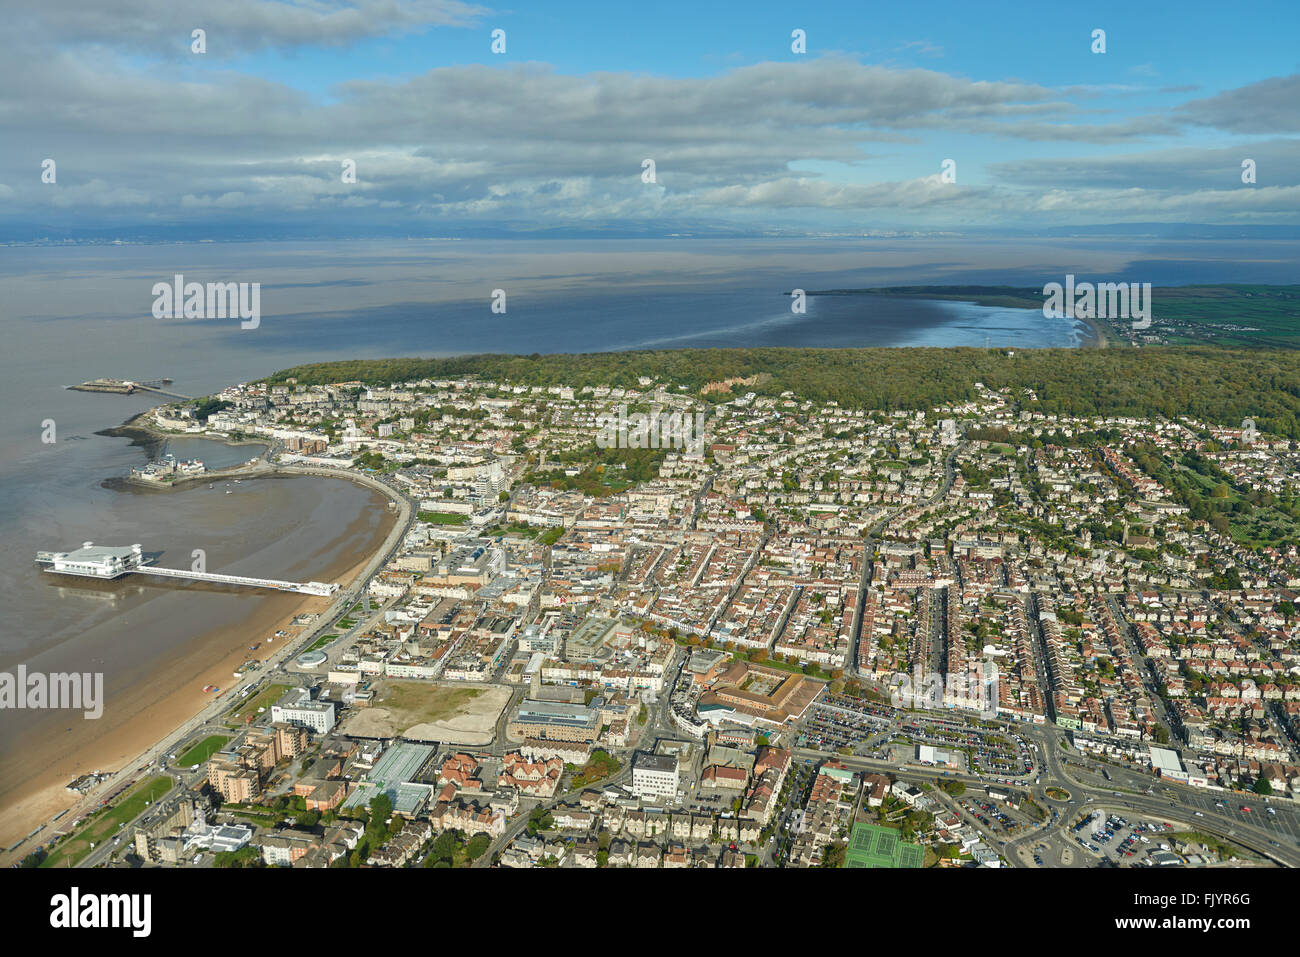 An aerial view of Weston Super Mare - Stock Image